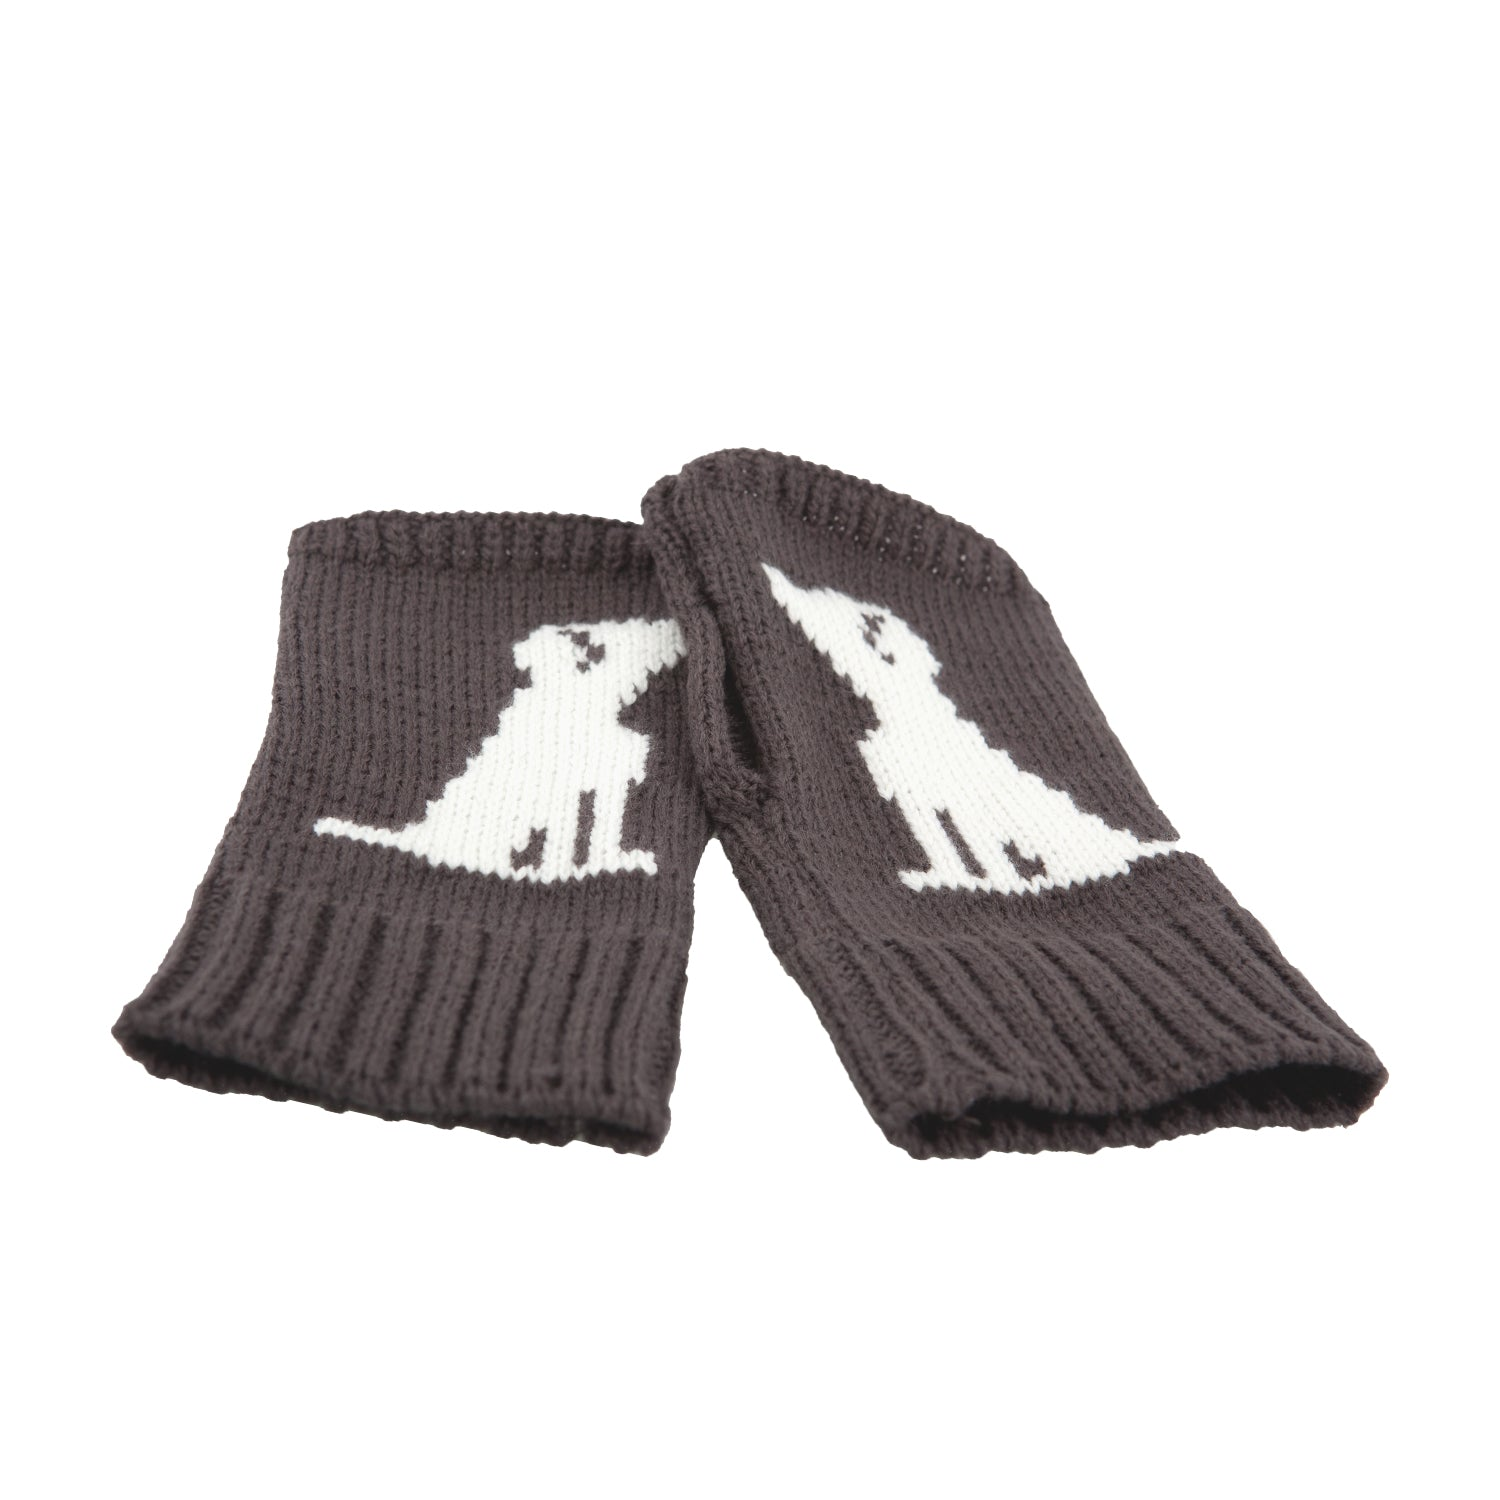 DogKrazy.Gifts –Large Breed Fingerless Gloves – Charcoal grey with a white large breed dog  motif, makes a great gift for walking the dog available from Dog Krazy Gifts